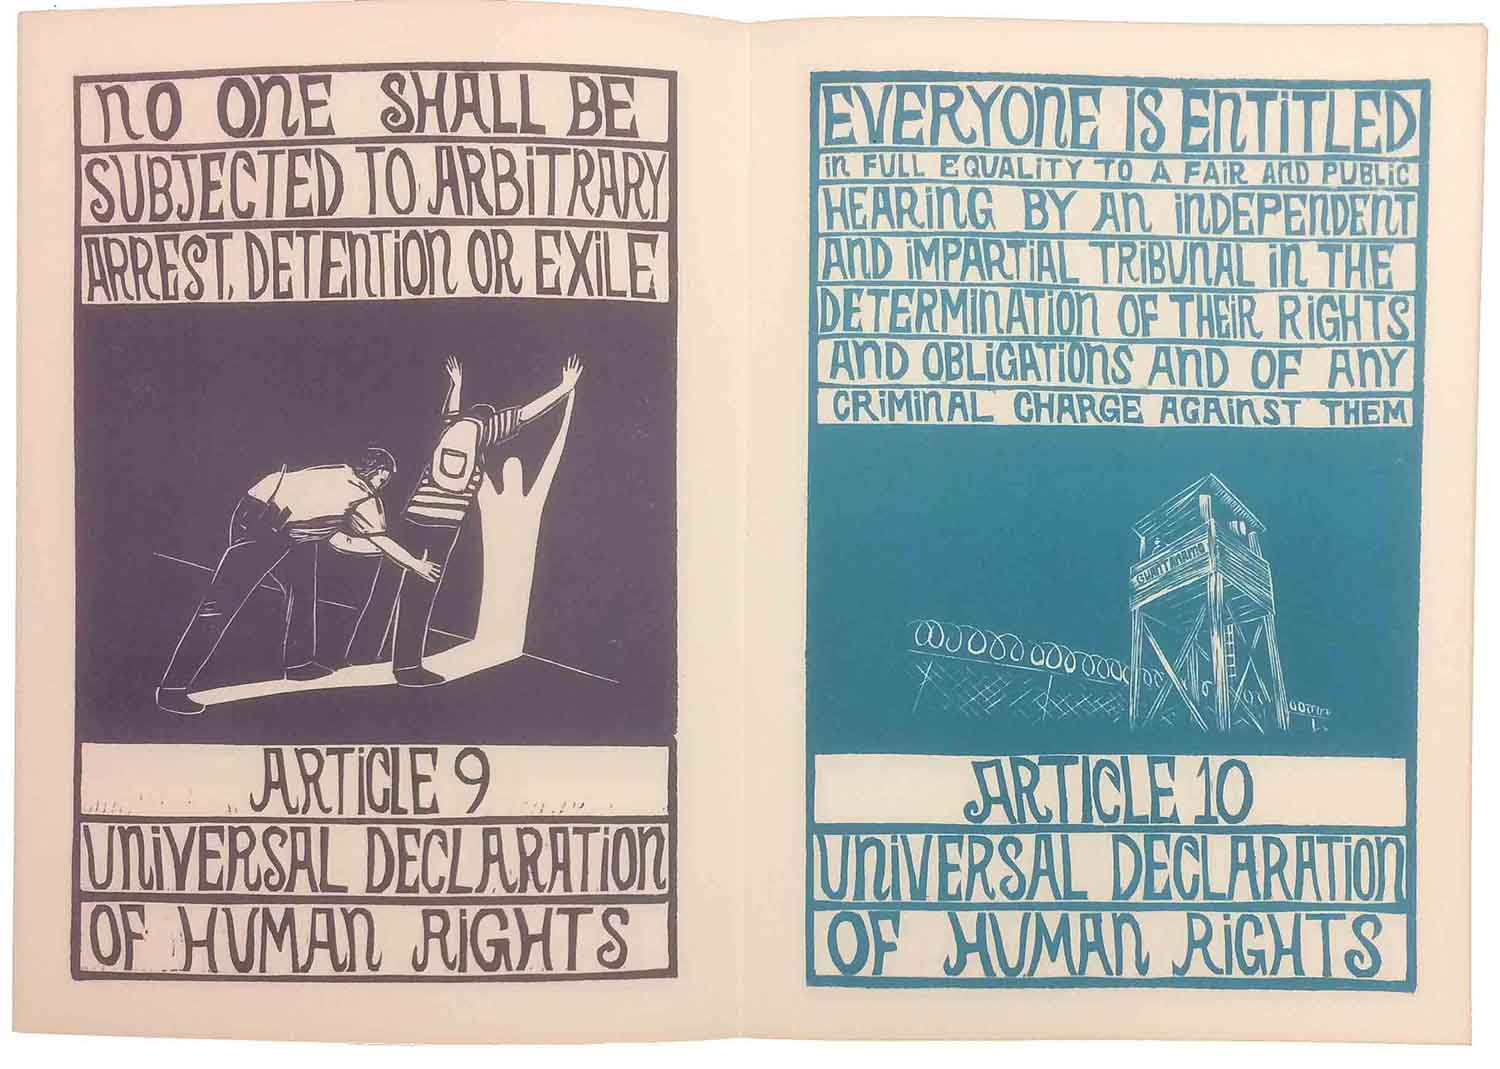 universal declaration of human rights book this project is an artistic interpretation of the universal declaration of human rights each article is presented along images depicting areas where